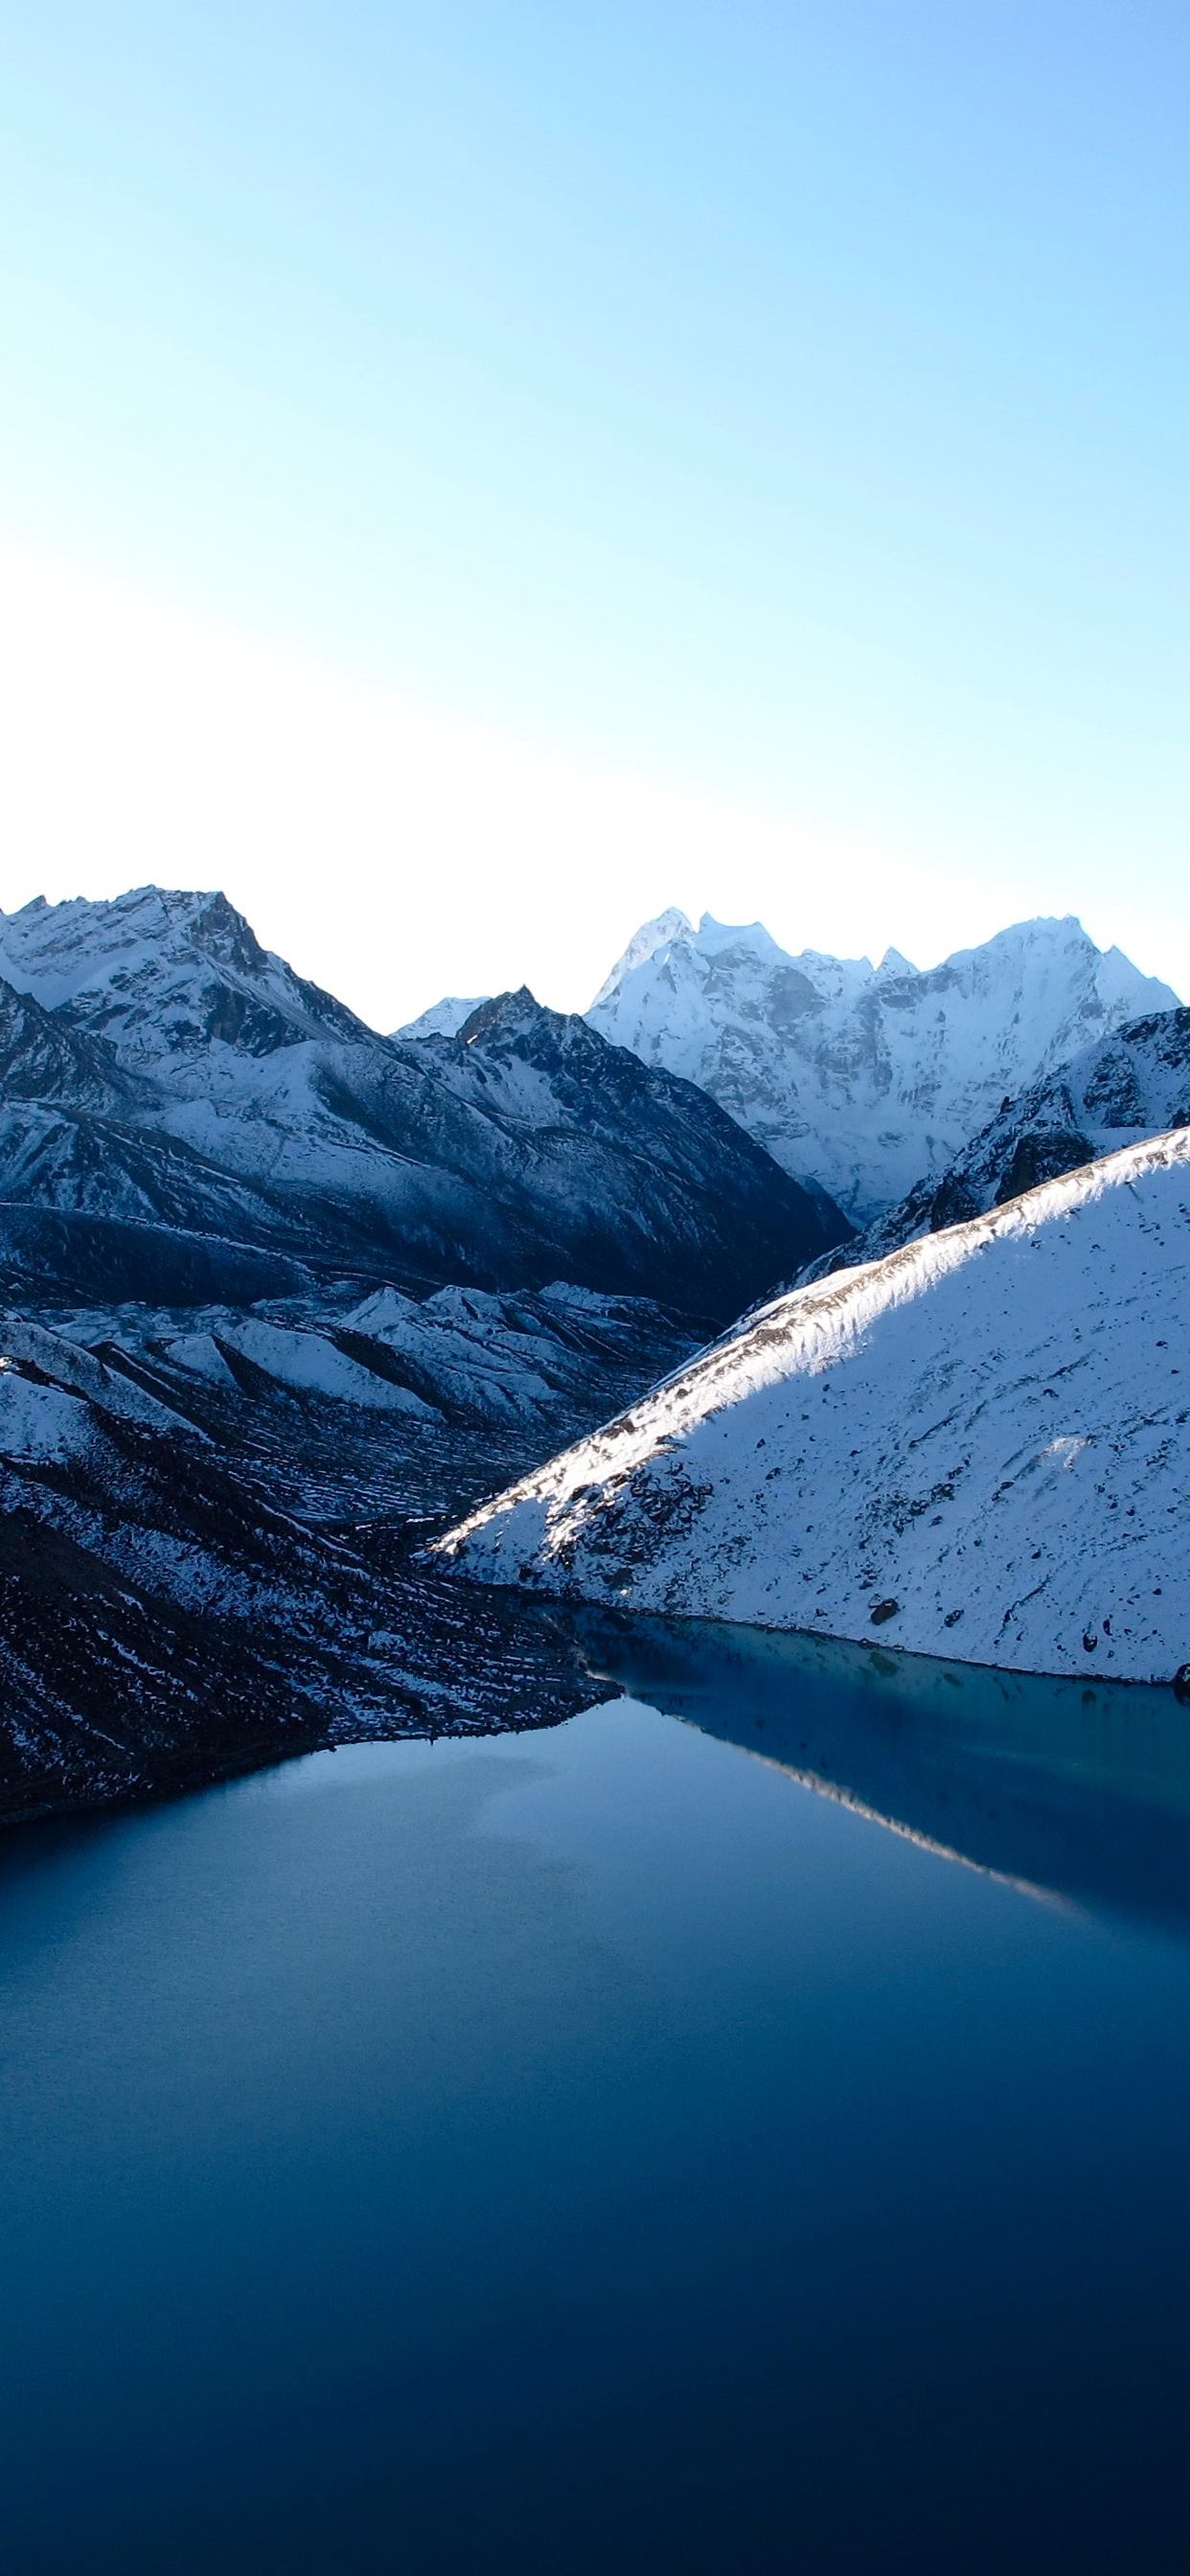 iPhone wallpapers nepal gokyo ri Fonds d'écran iPhone du 10/12/2019